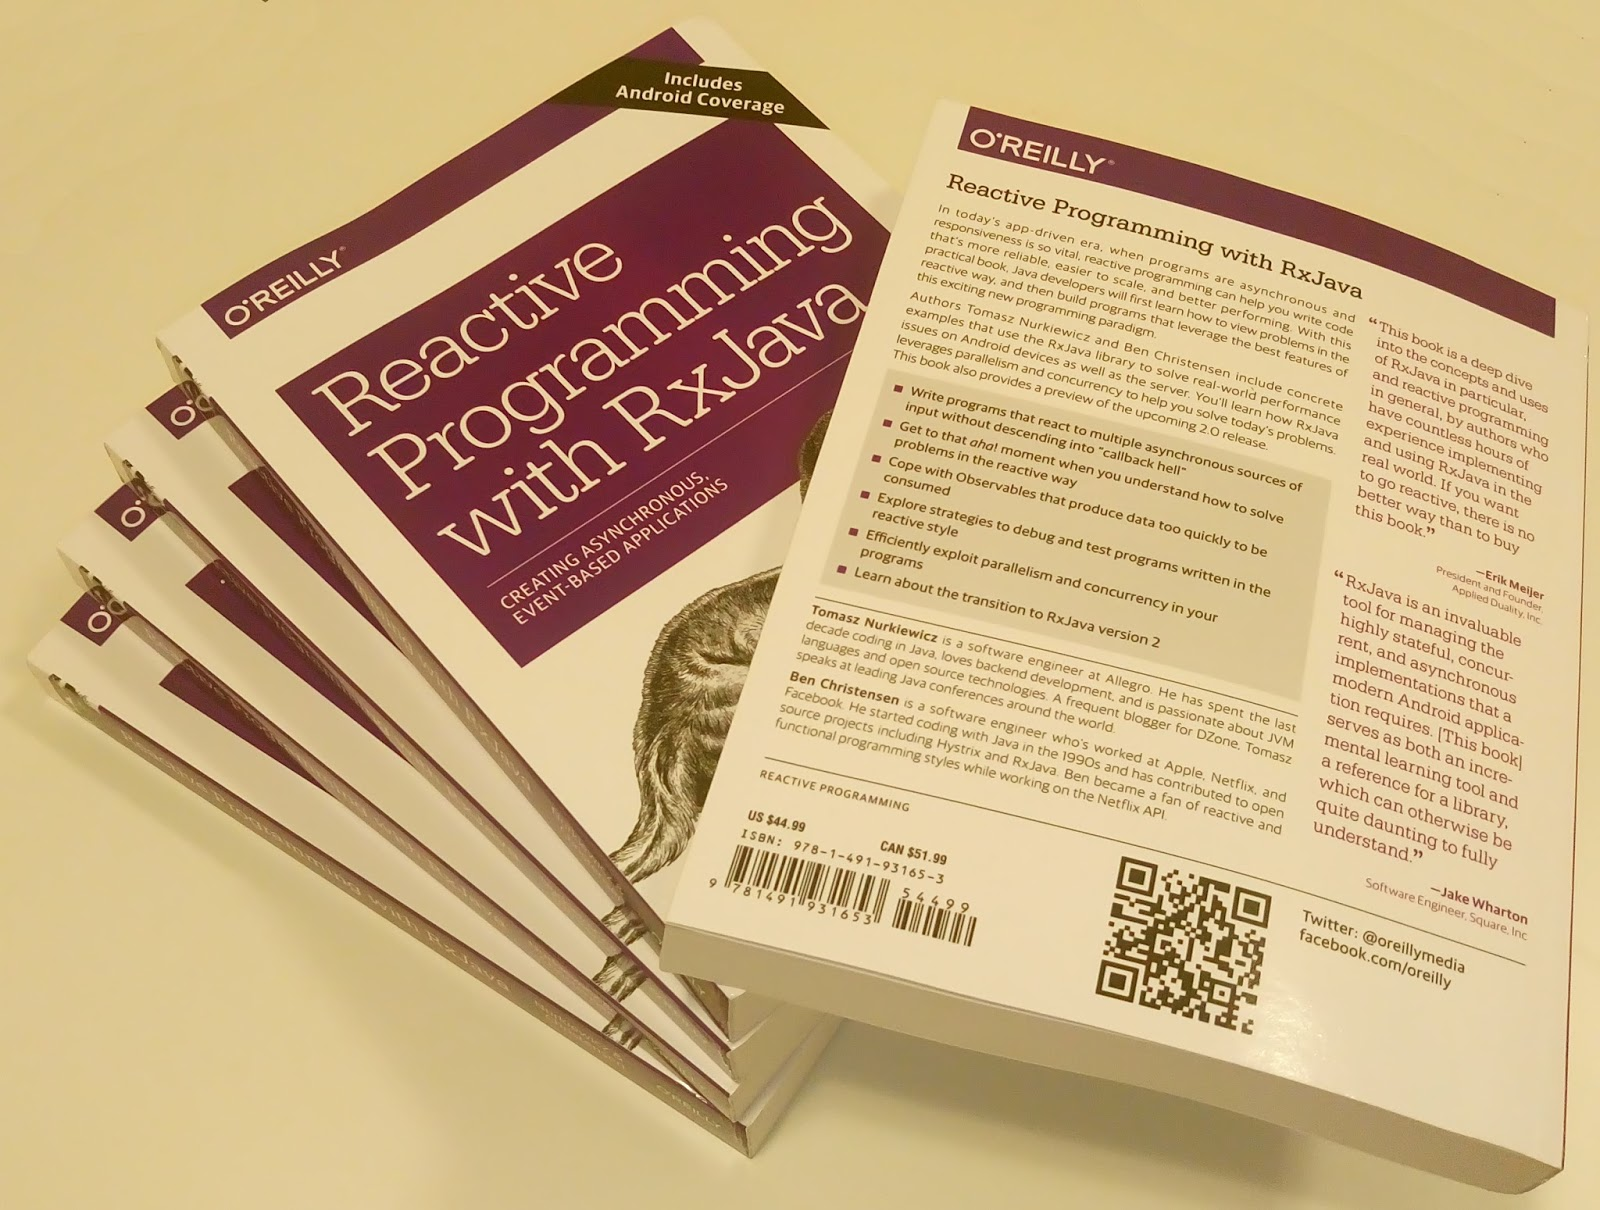 Reactive Programming with RxJava book published